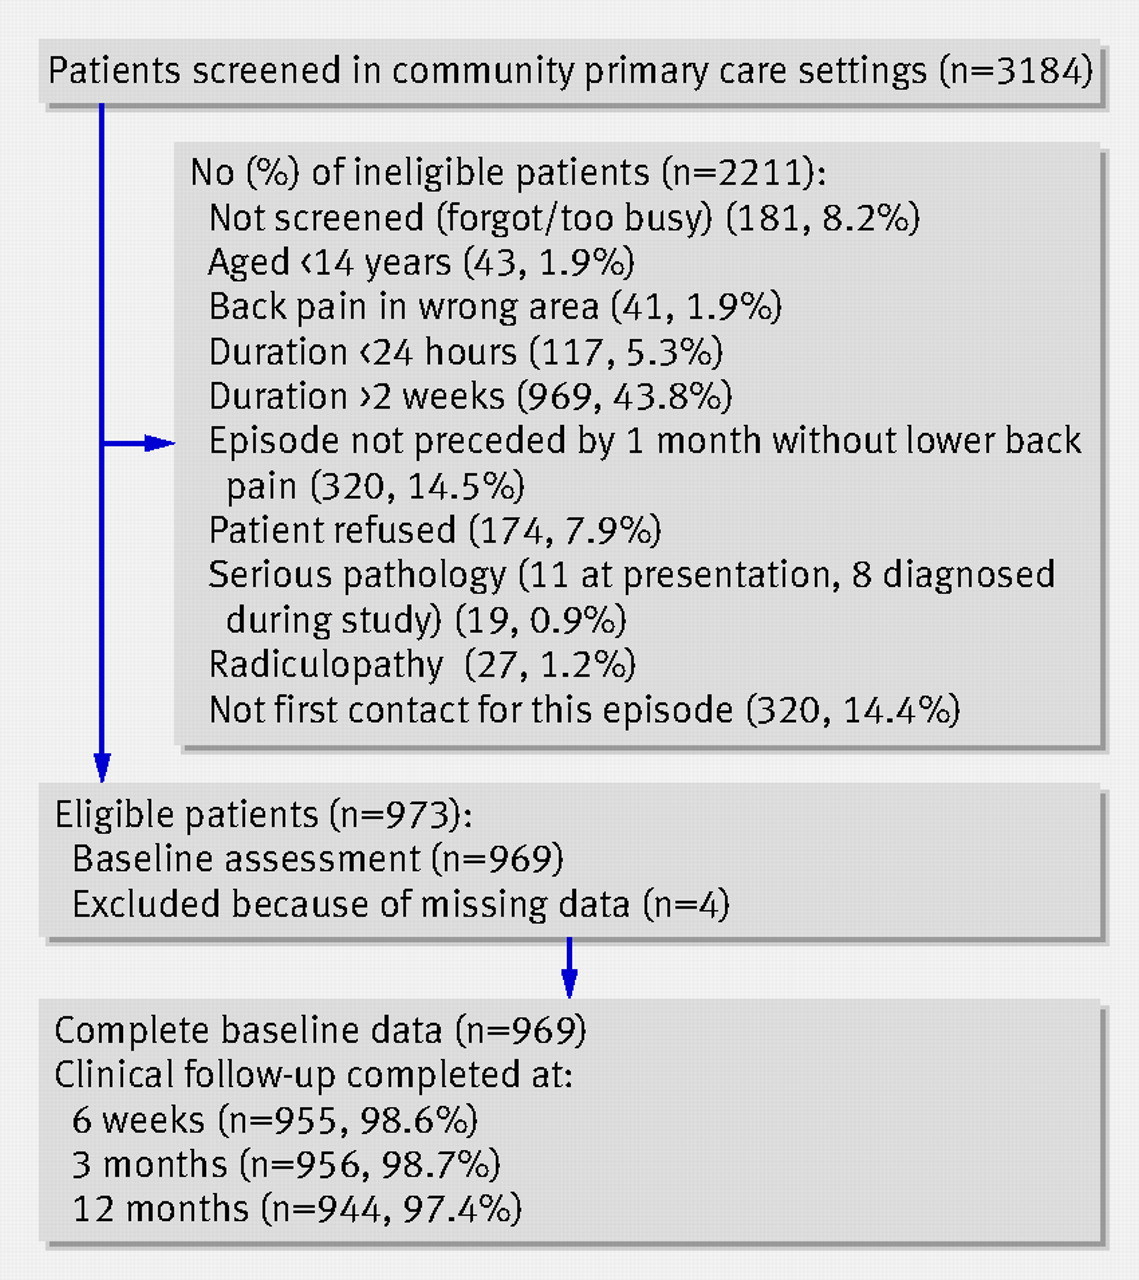 prognosis in patients with recent onset low back pain in australian